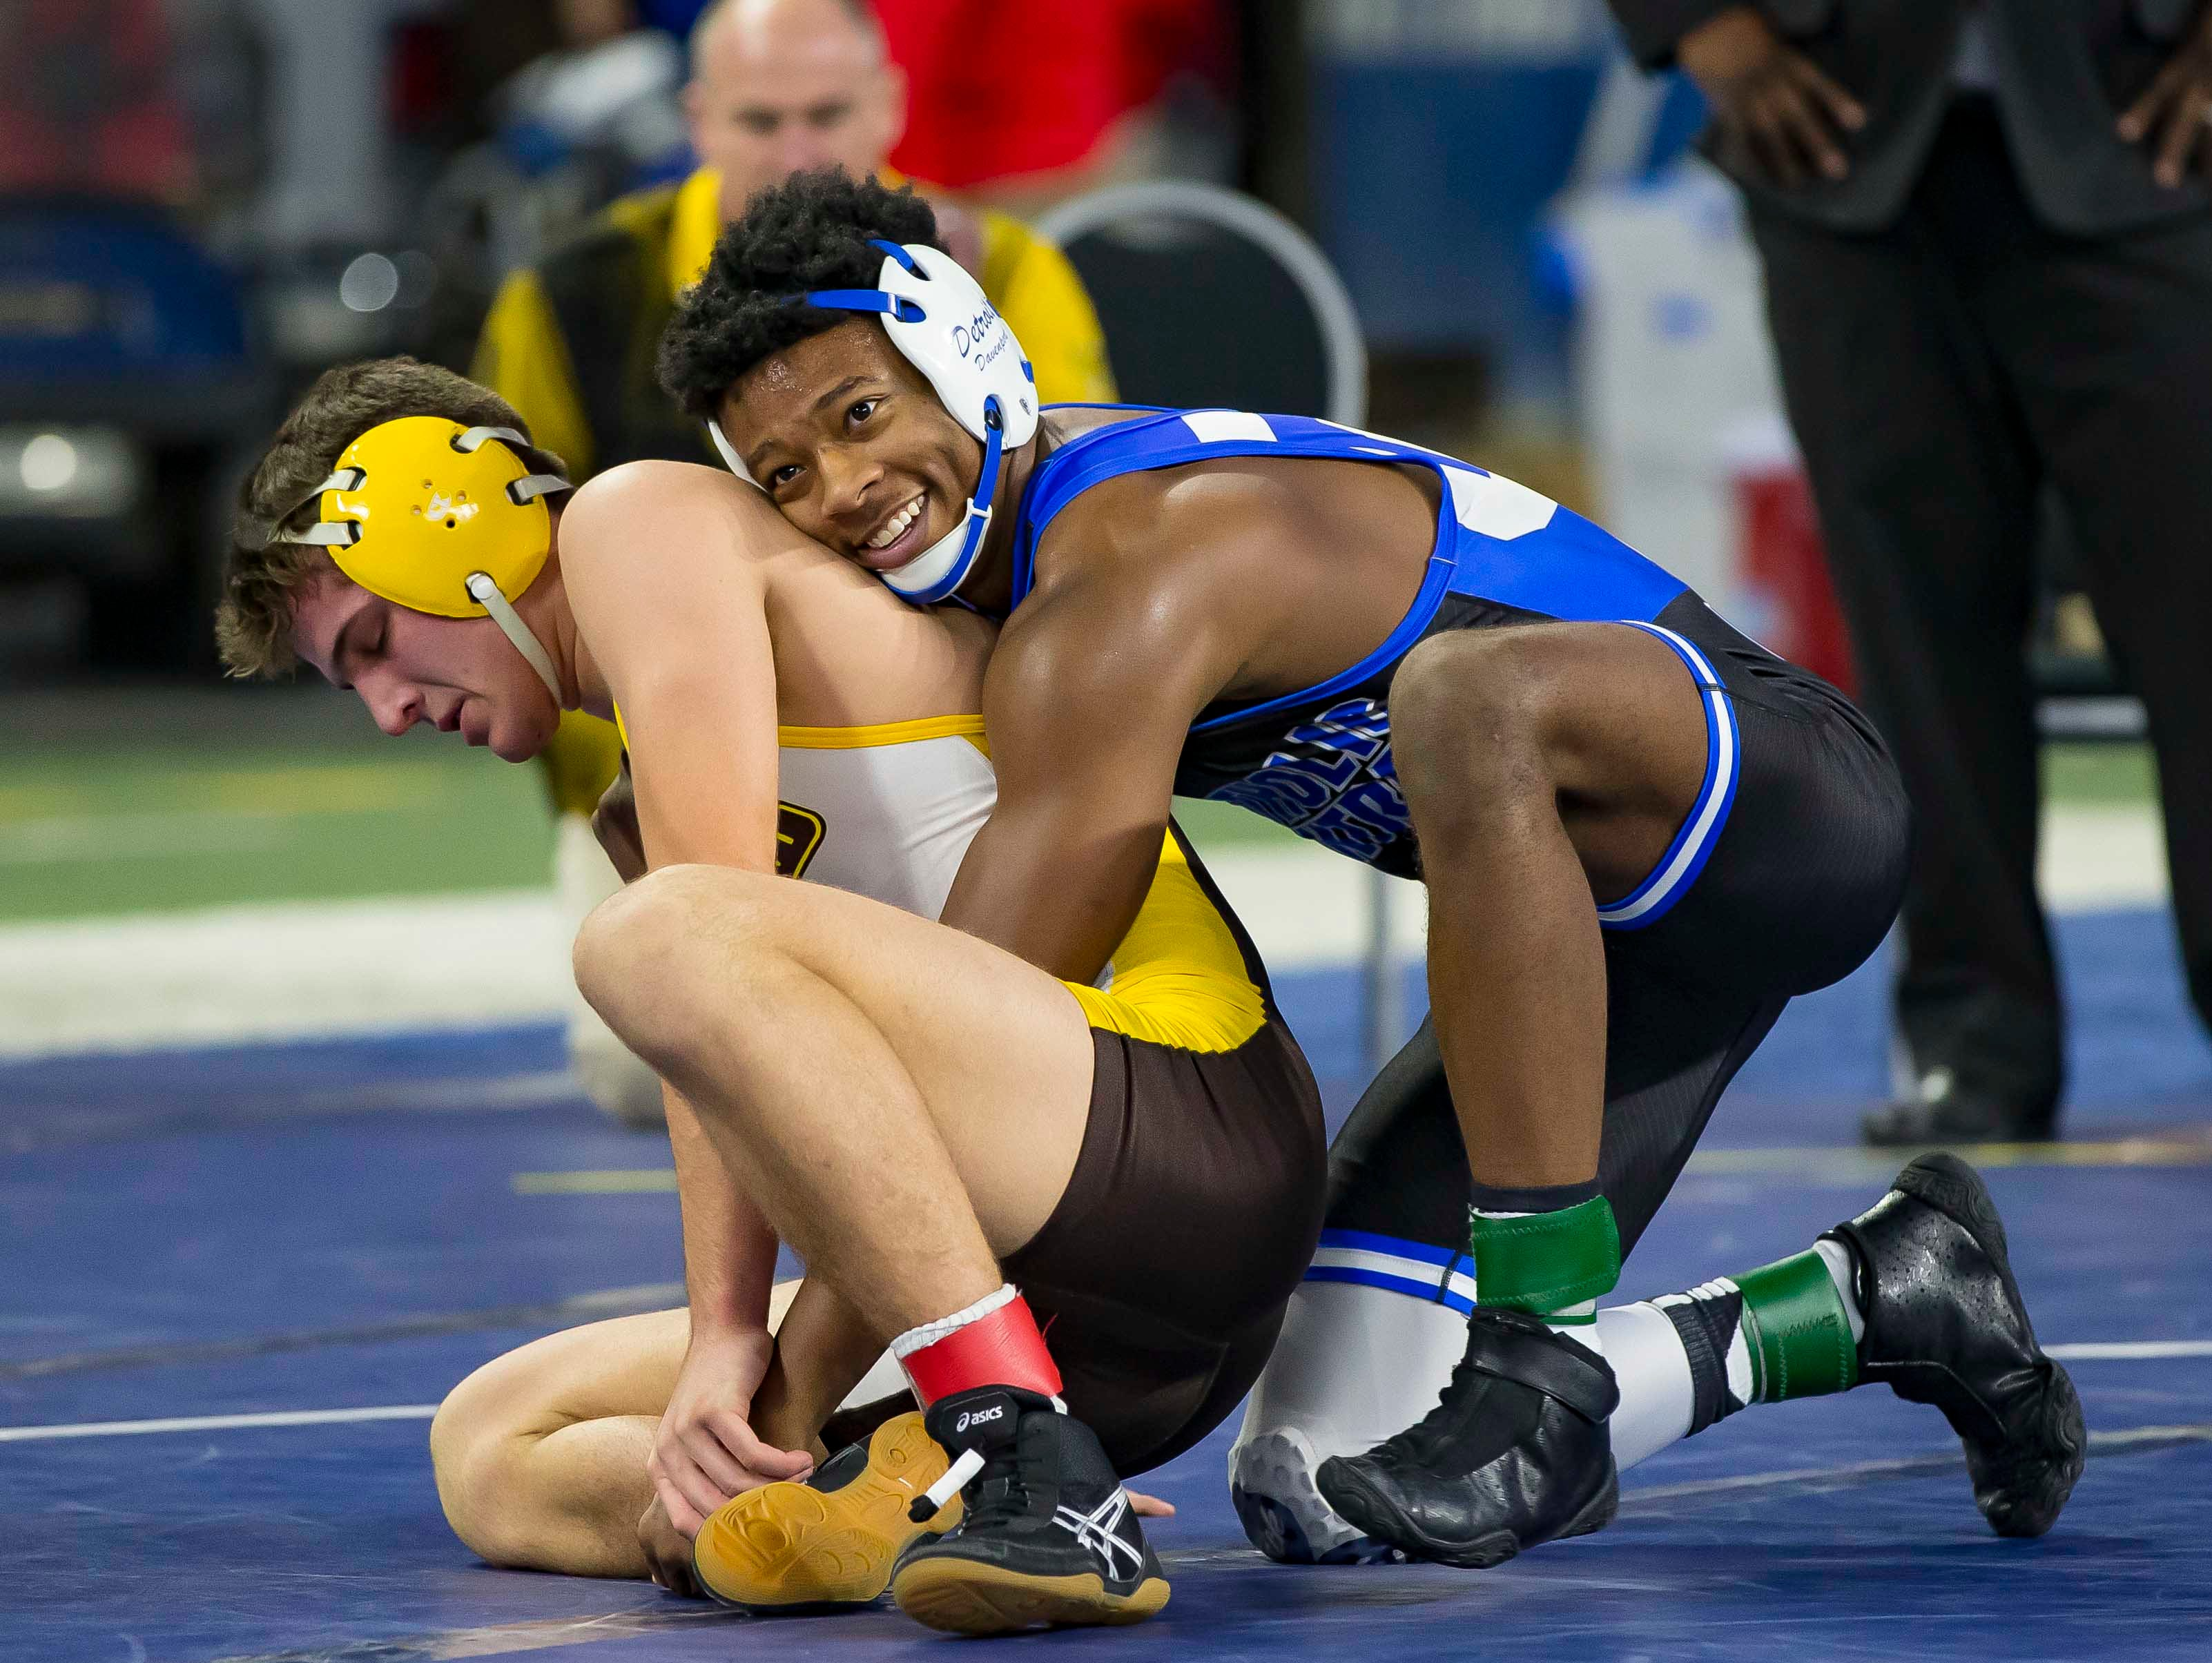 Kevon Davenport of Detroit Catholic Central, top, defeated Vic Schoenherr of Bay City Western during their 145-pound Division 1 championship match. This was Davenports 4th straight state championship.